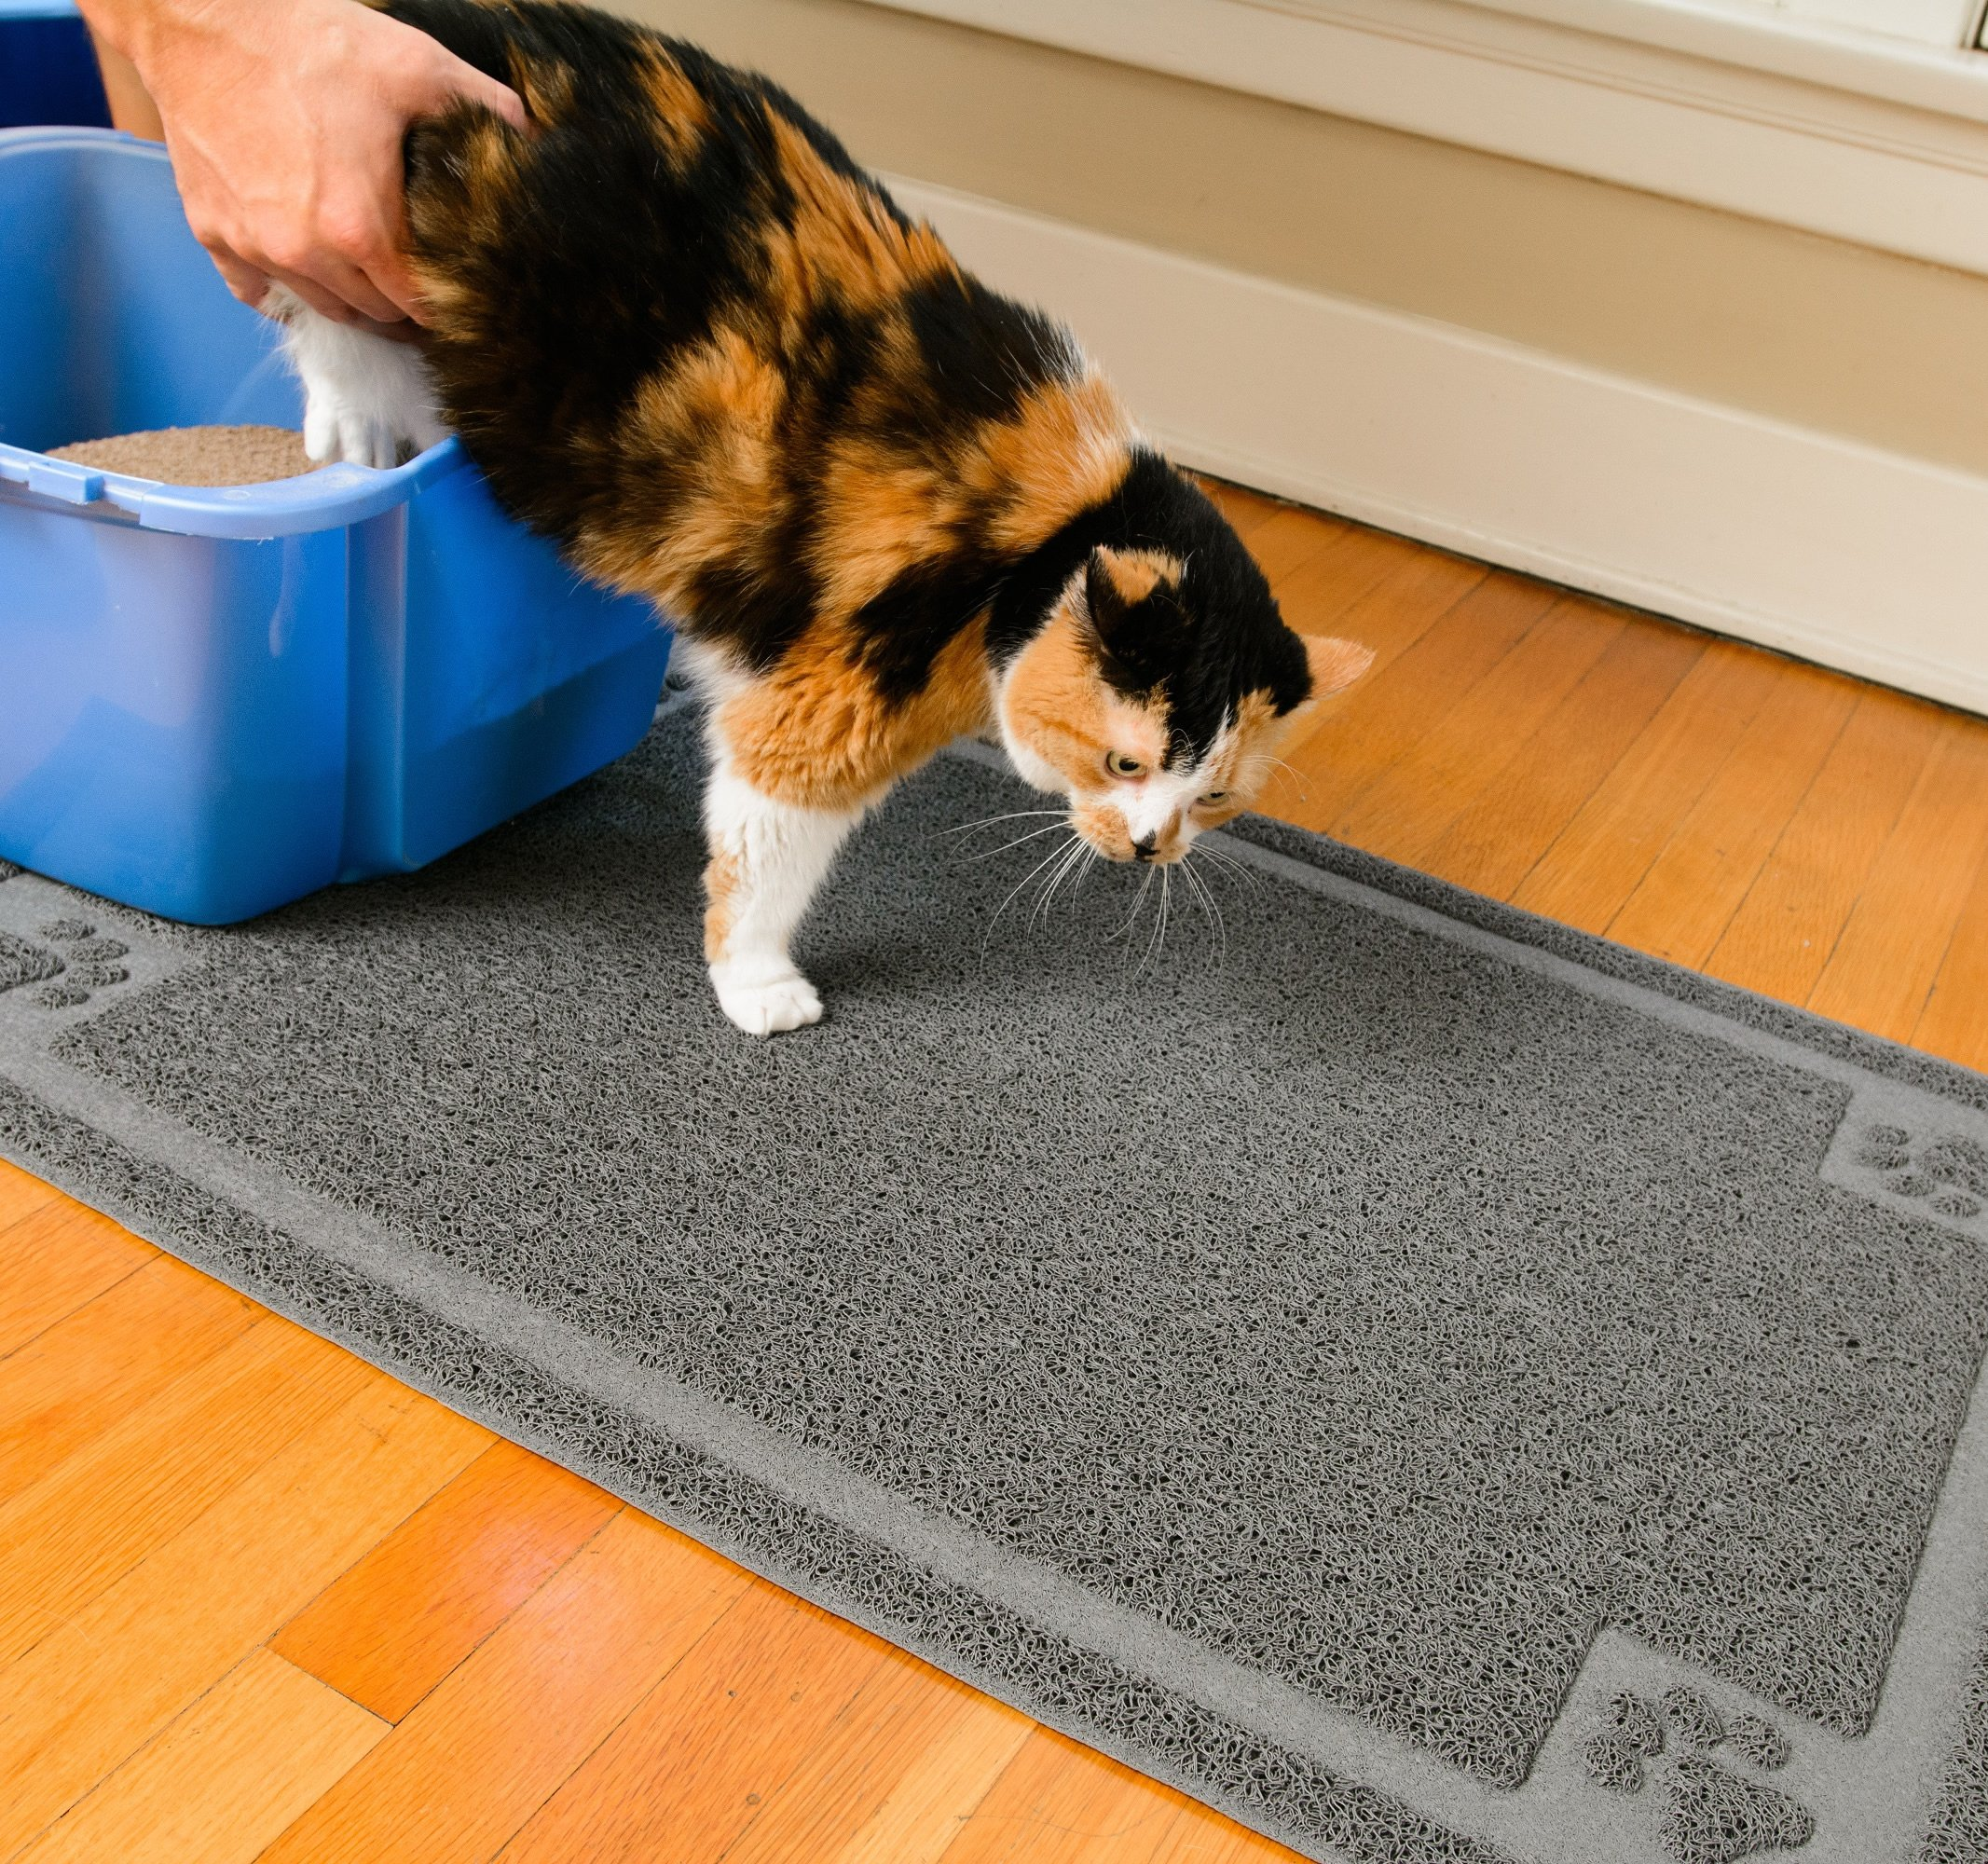 CleanHouse Premium Cat Litter Mat, Phthalate Free, Extra Large 36''x24'', Cat Mat Stops All Kitty Litter Tracking and Scatter From Cat Litter Box